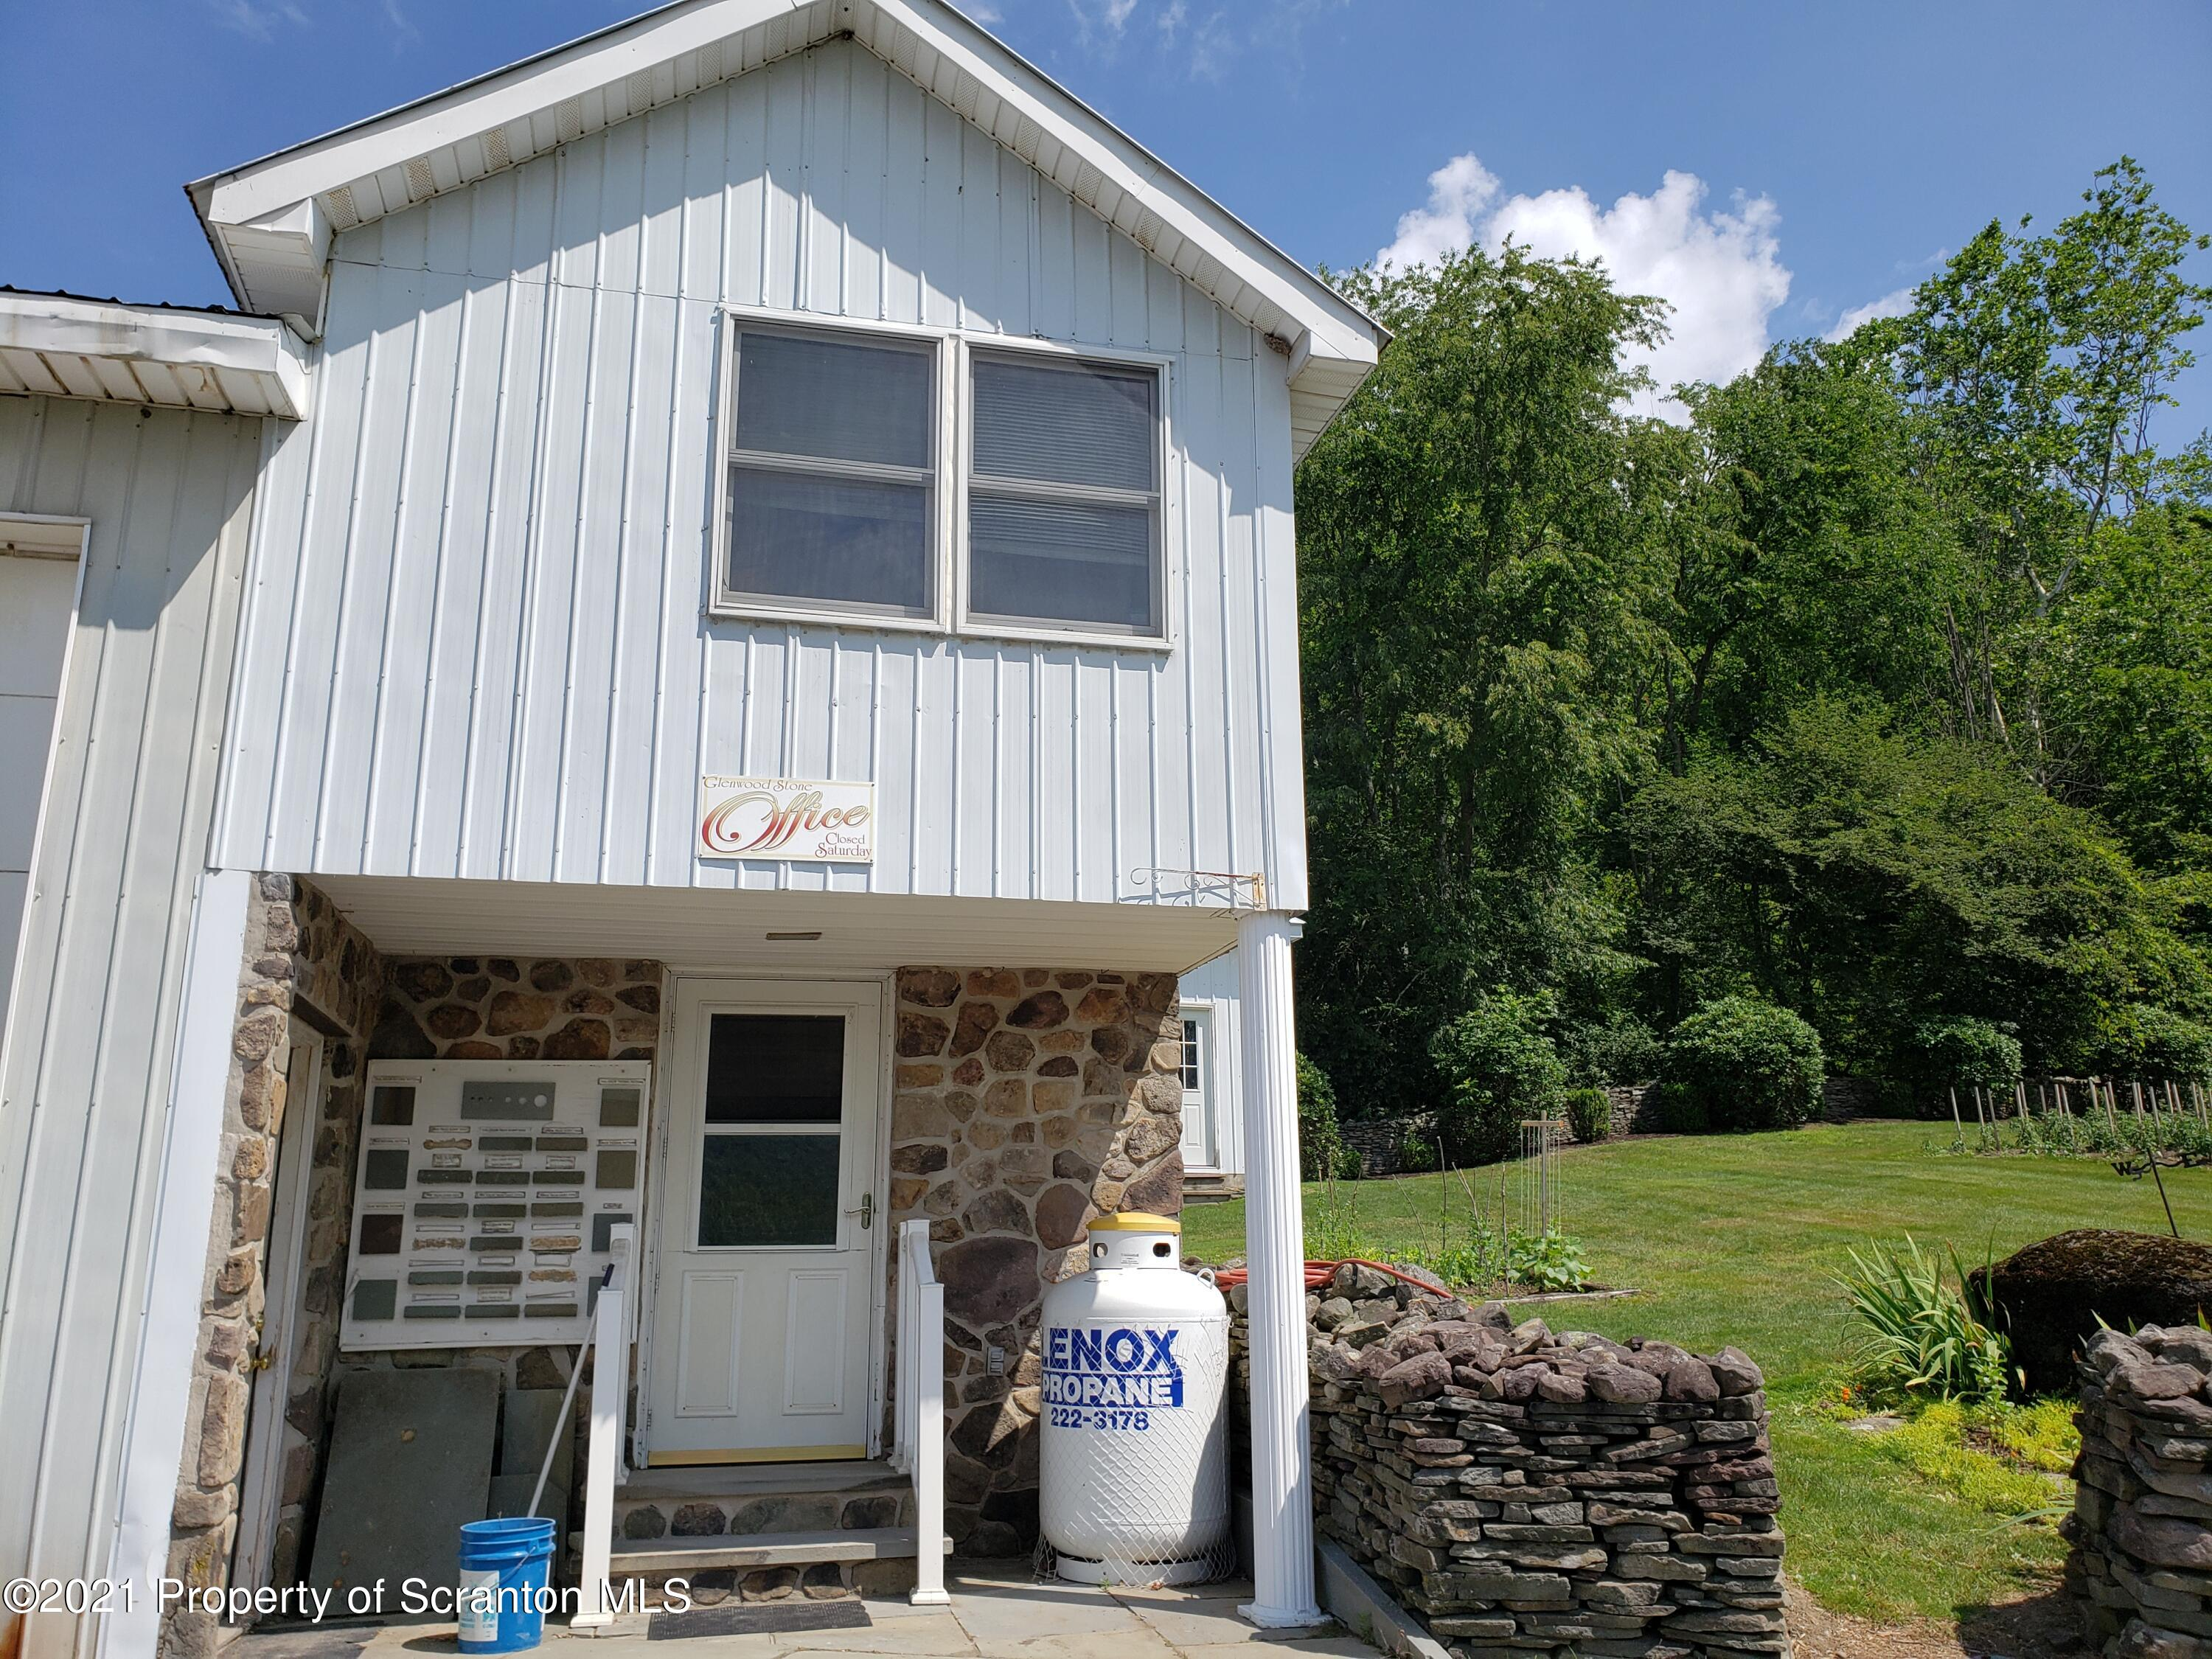 363 PA-374, Nicholson, Pennsylvania 18446, ,1 BathroomBathrooms,Commercial,For Lease,PA-374,21-2977